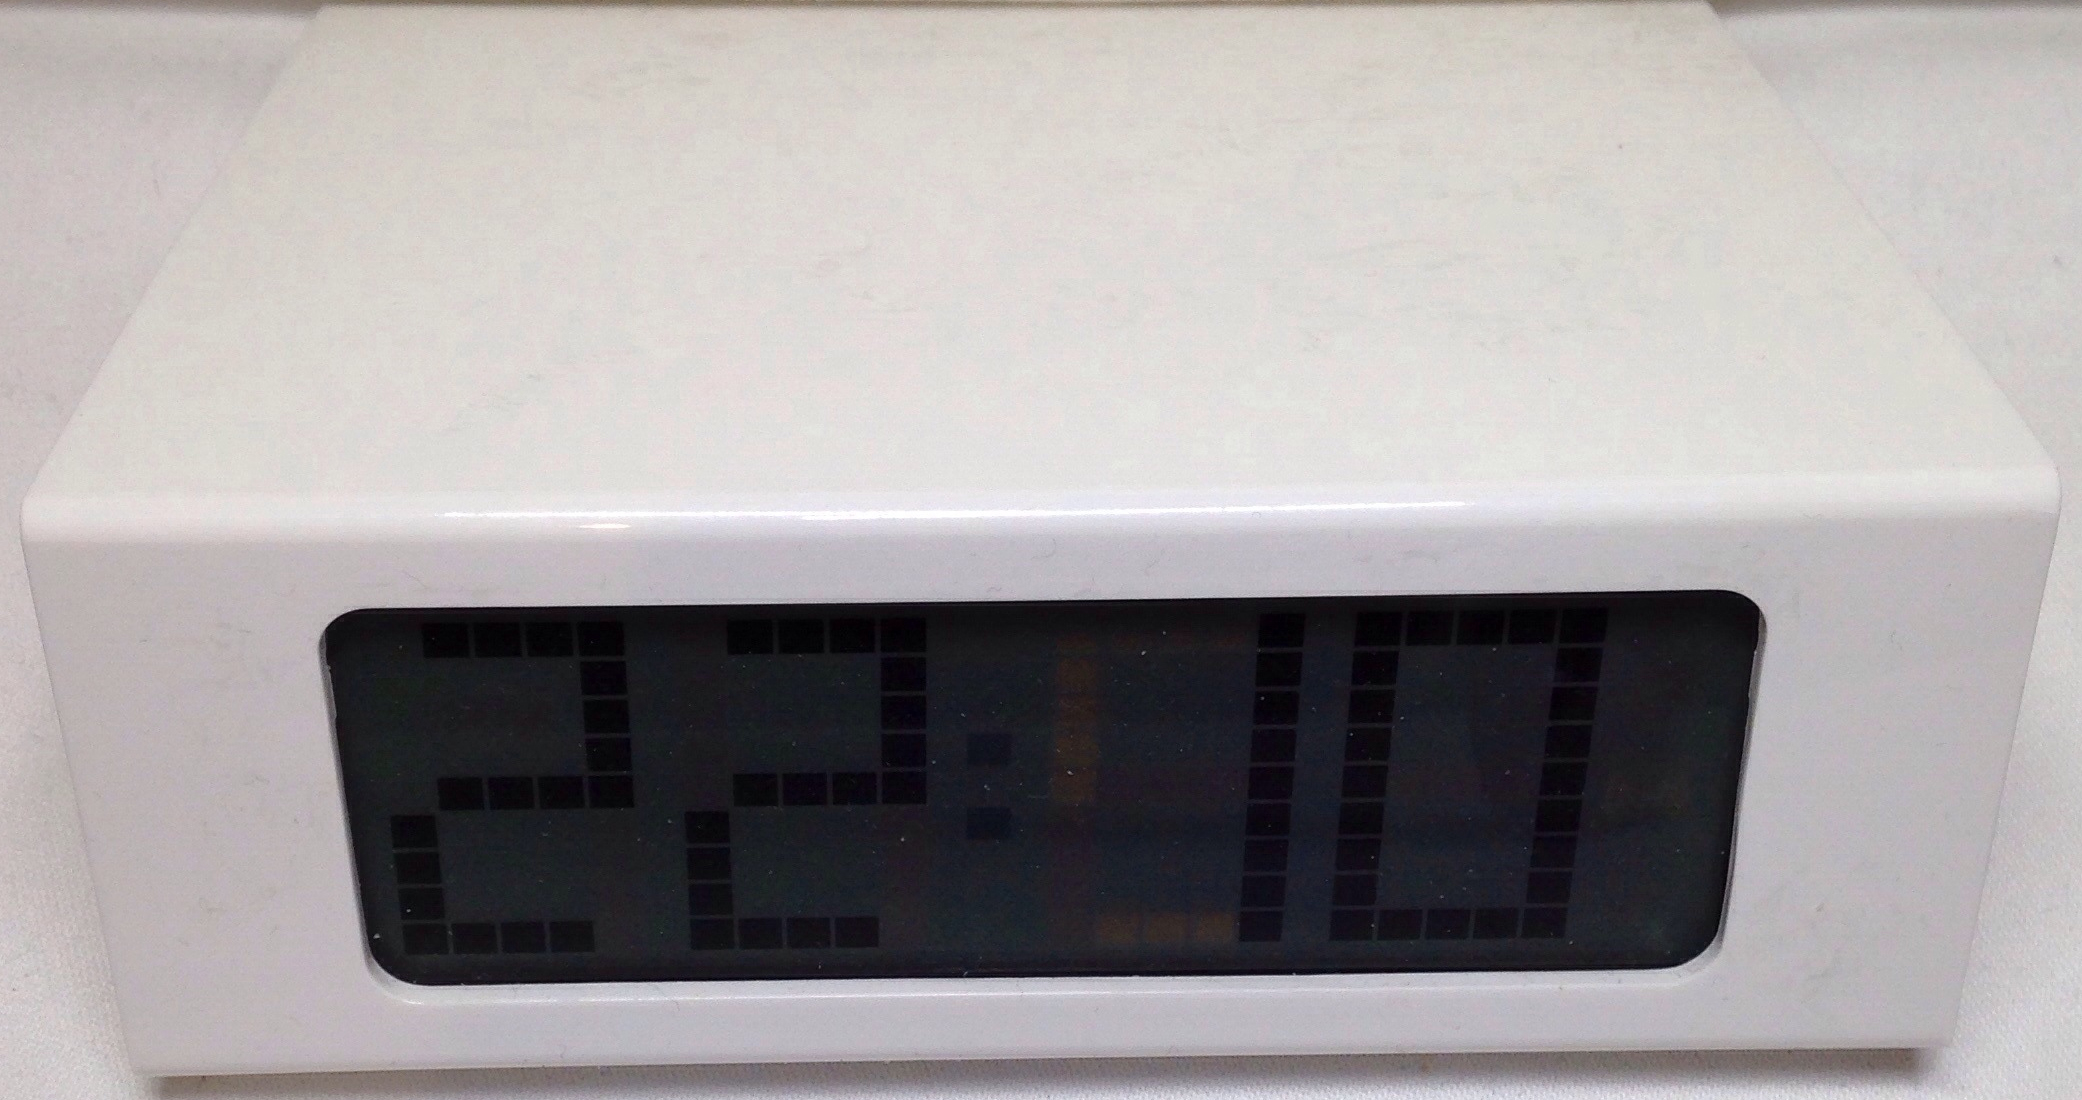 Digital Clock Daylight Saving Begins And The Ikea Vikis Digital Clock The Old